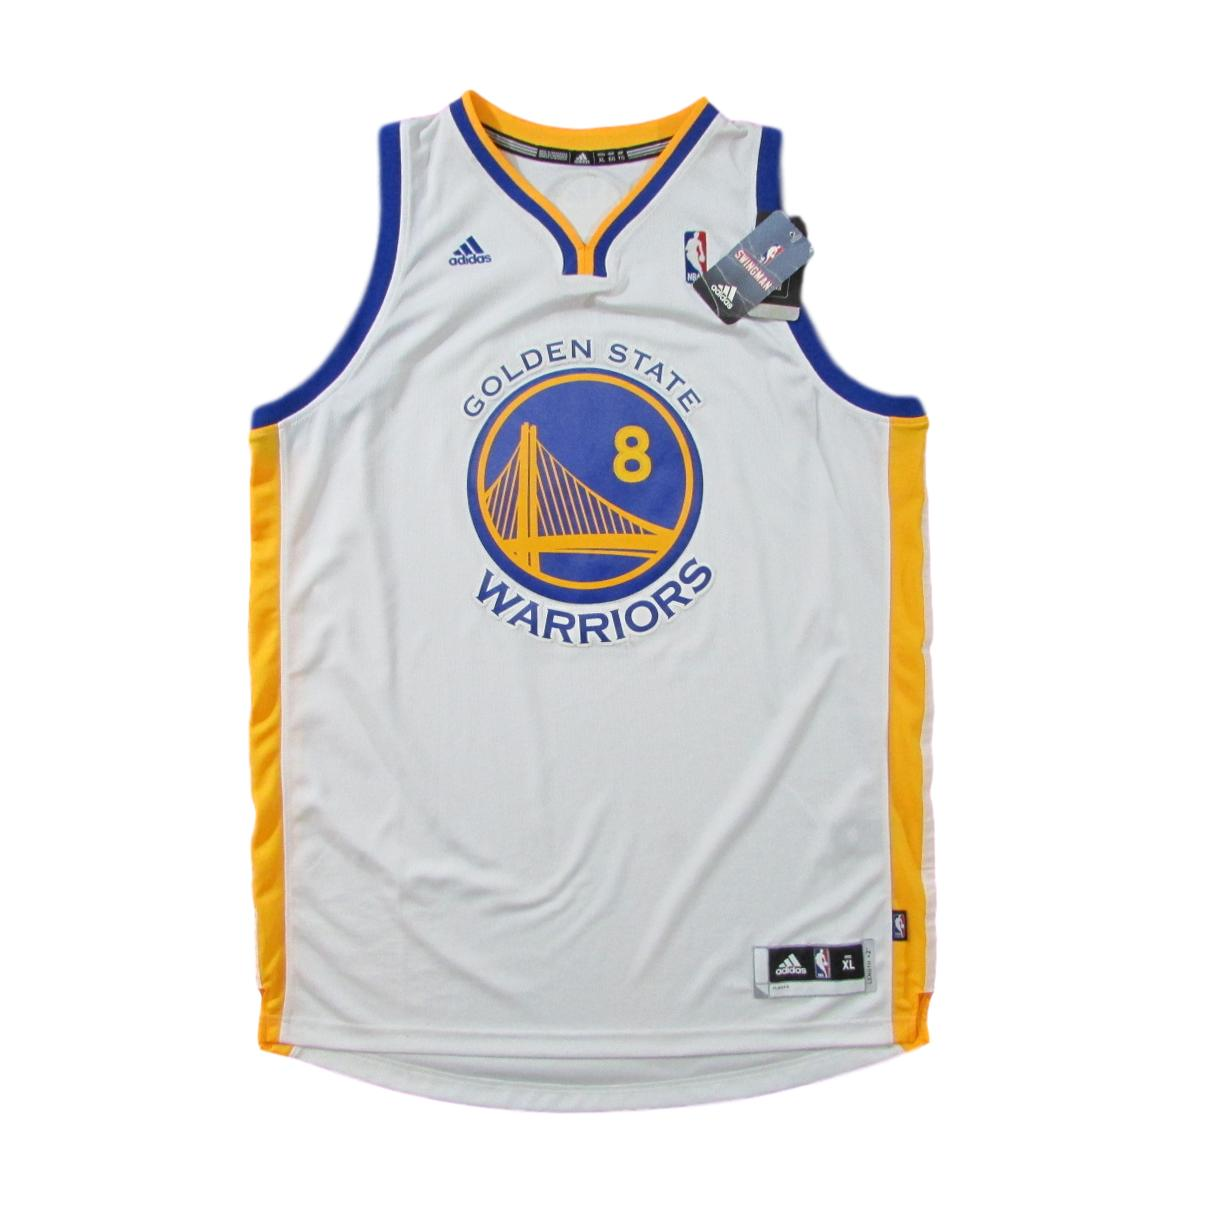 Golden State Warriors Autographed Monta Ellis Basketball Jersey Sz XL